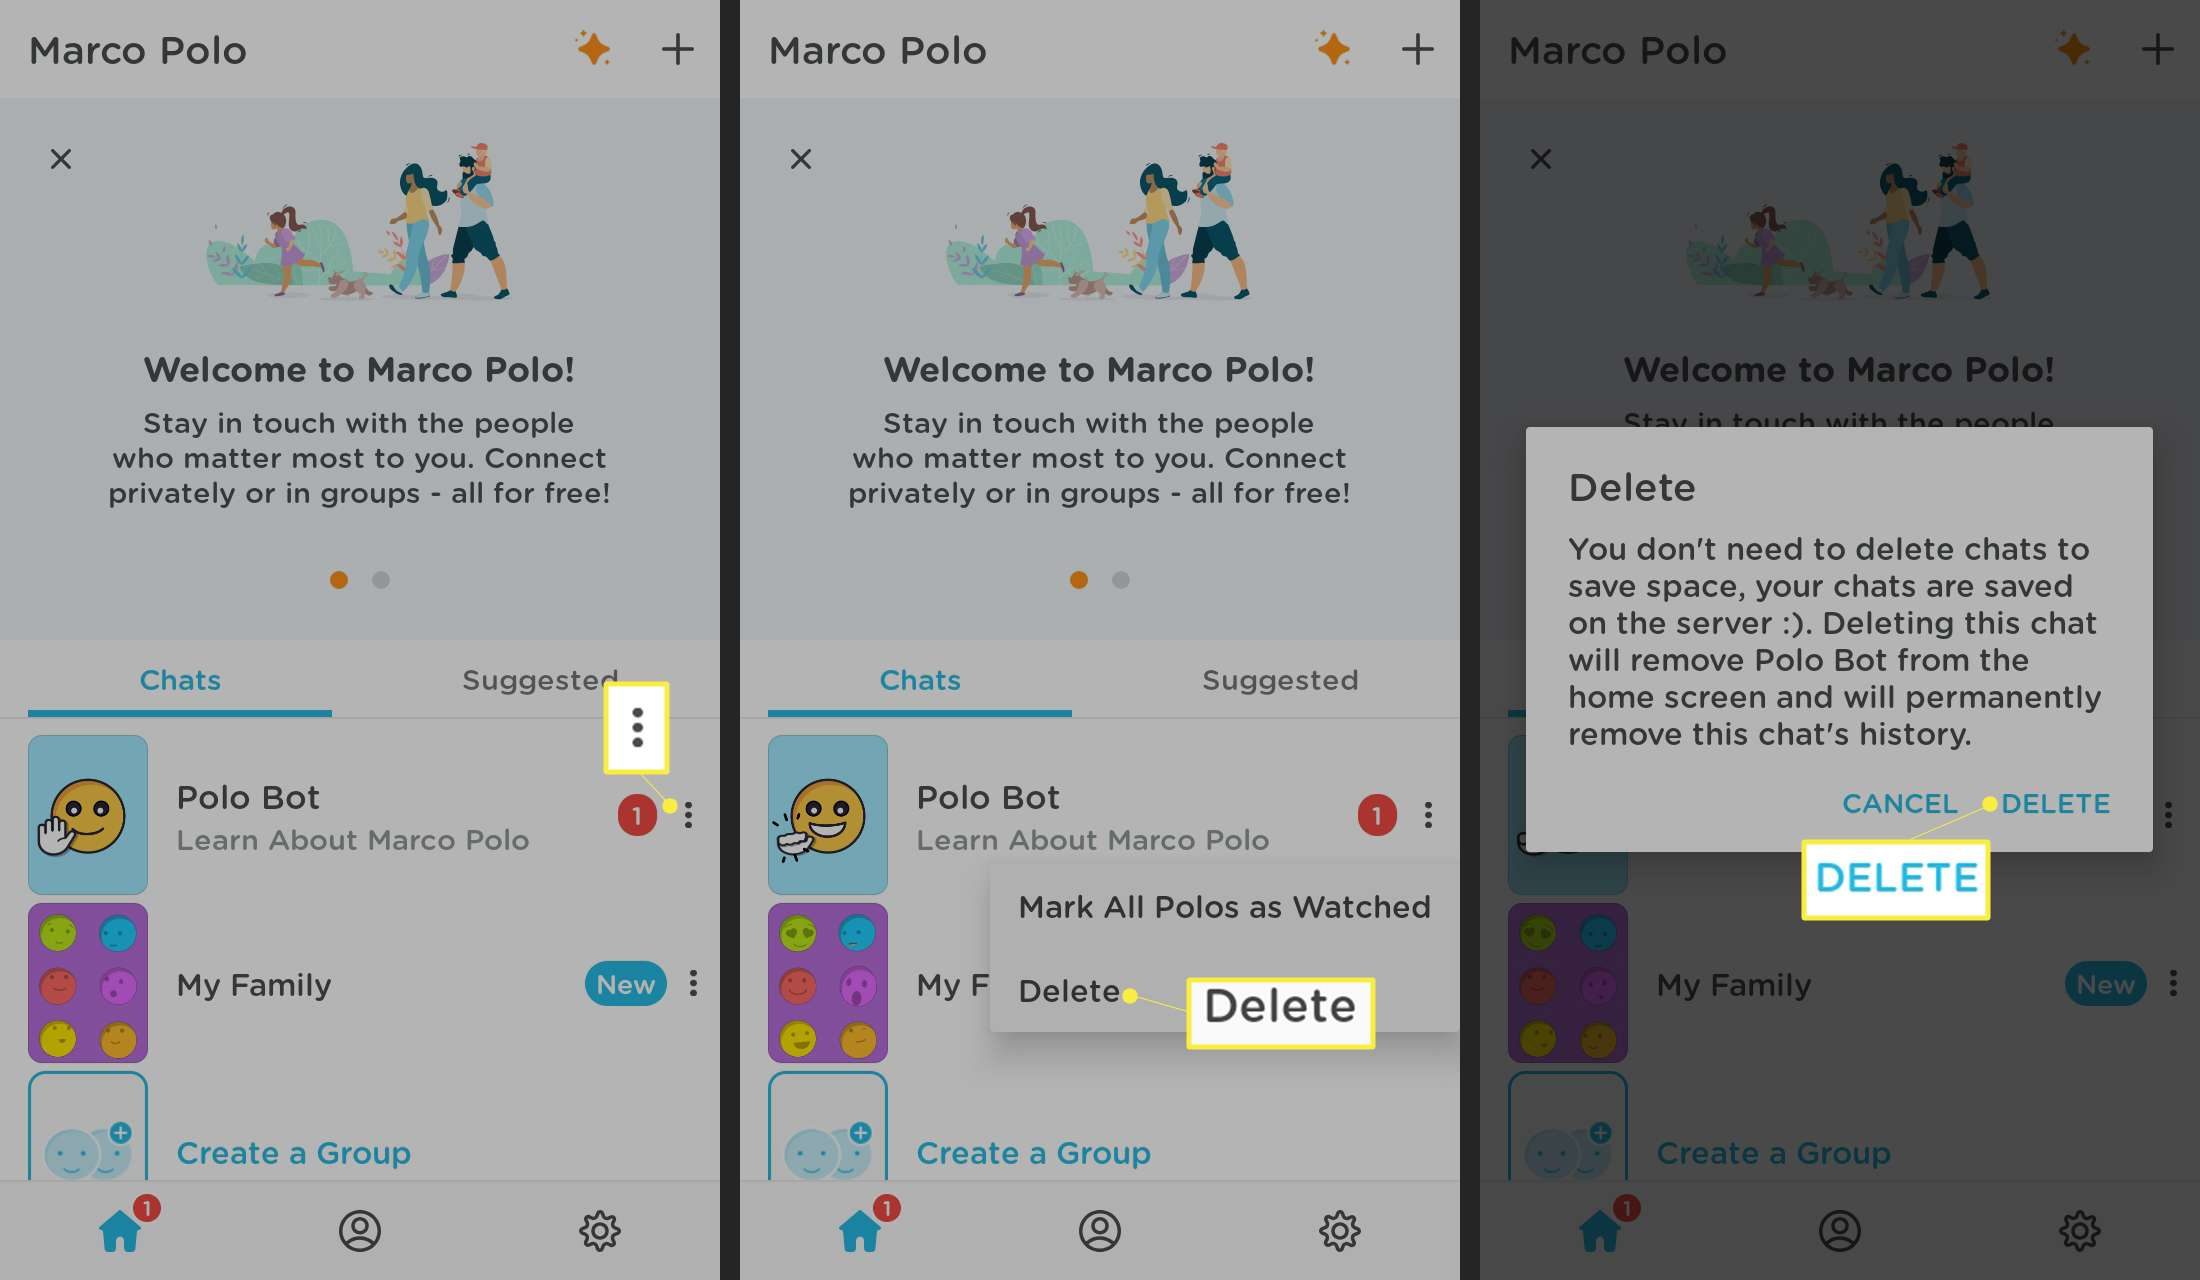 How to Delete an Entire Chat Conversation on marco polo